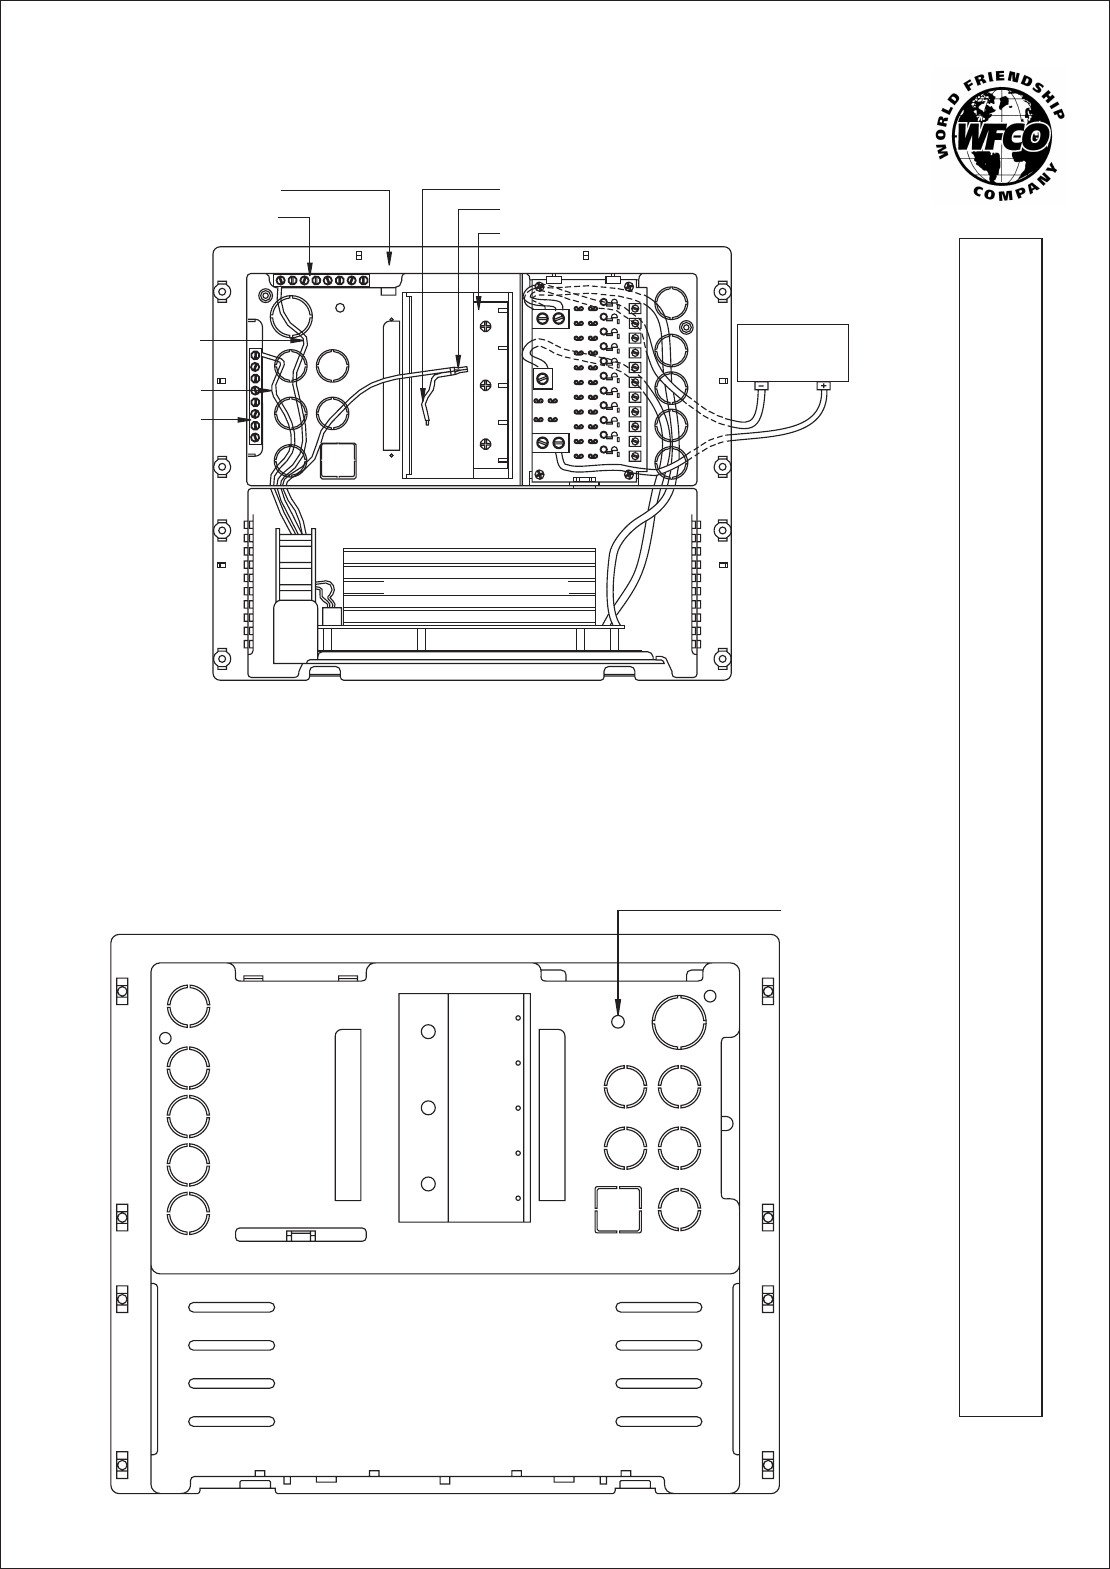 Wfco 8955 Converter Wiring Diagram For Your Needs